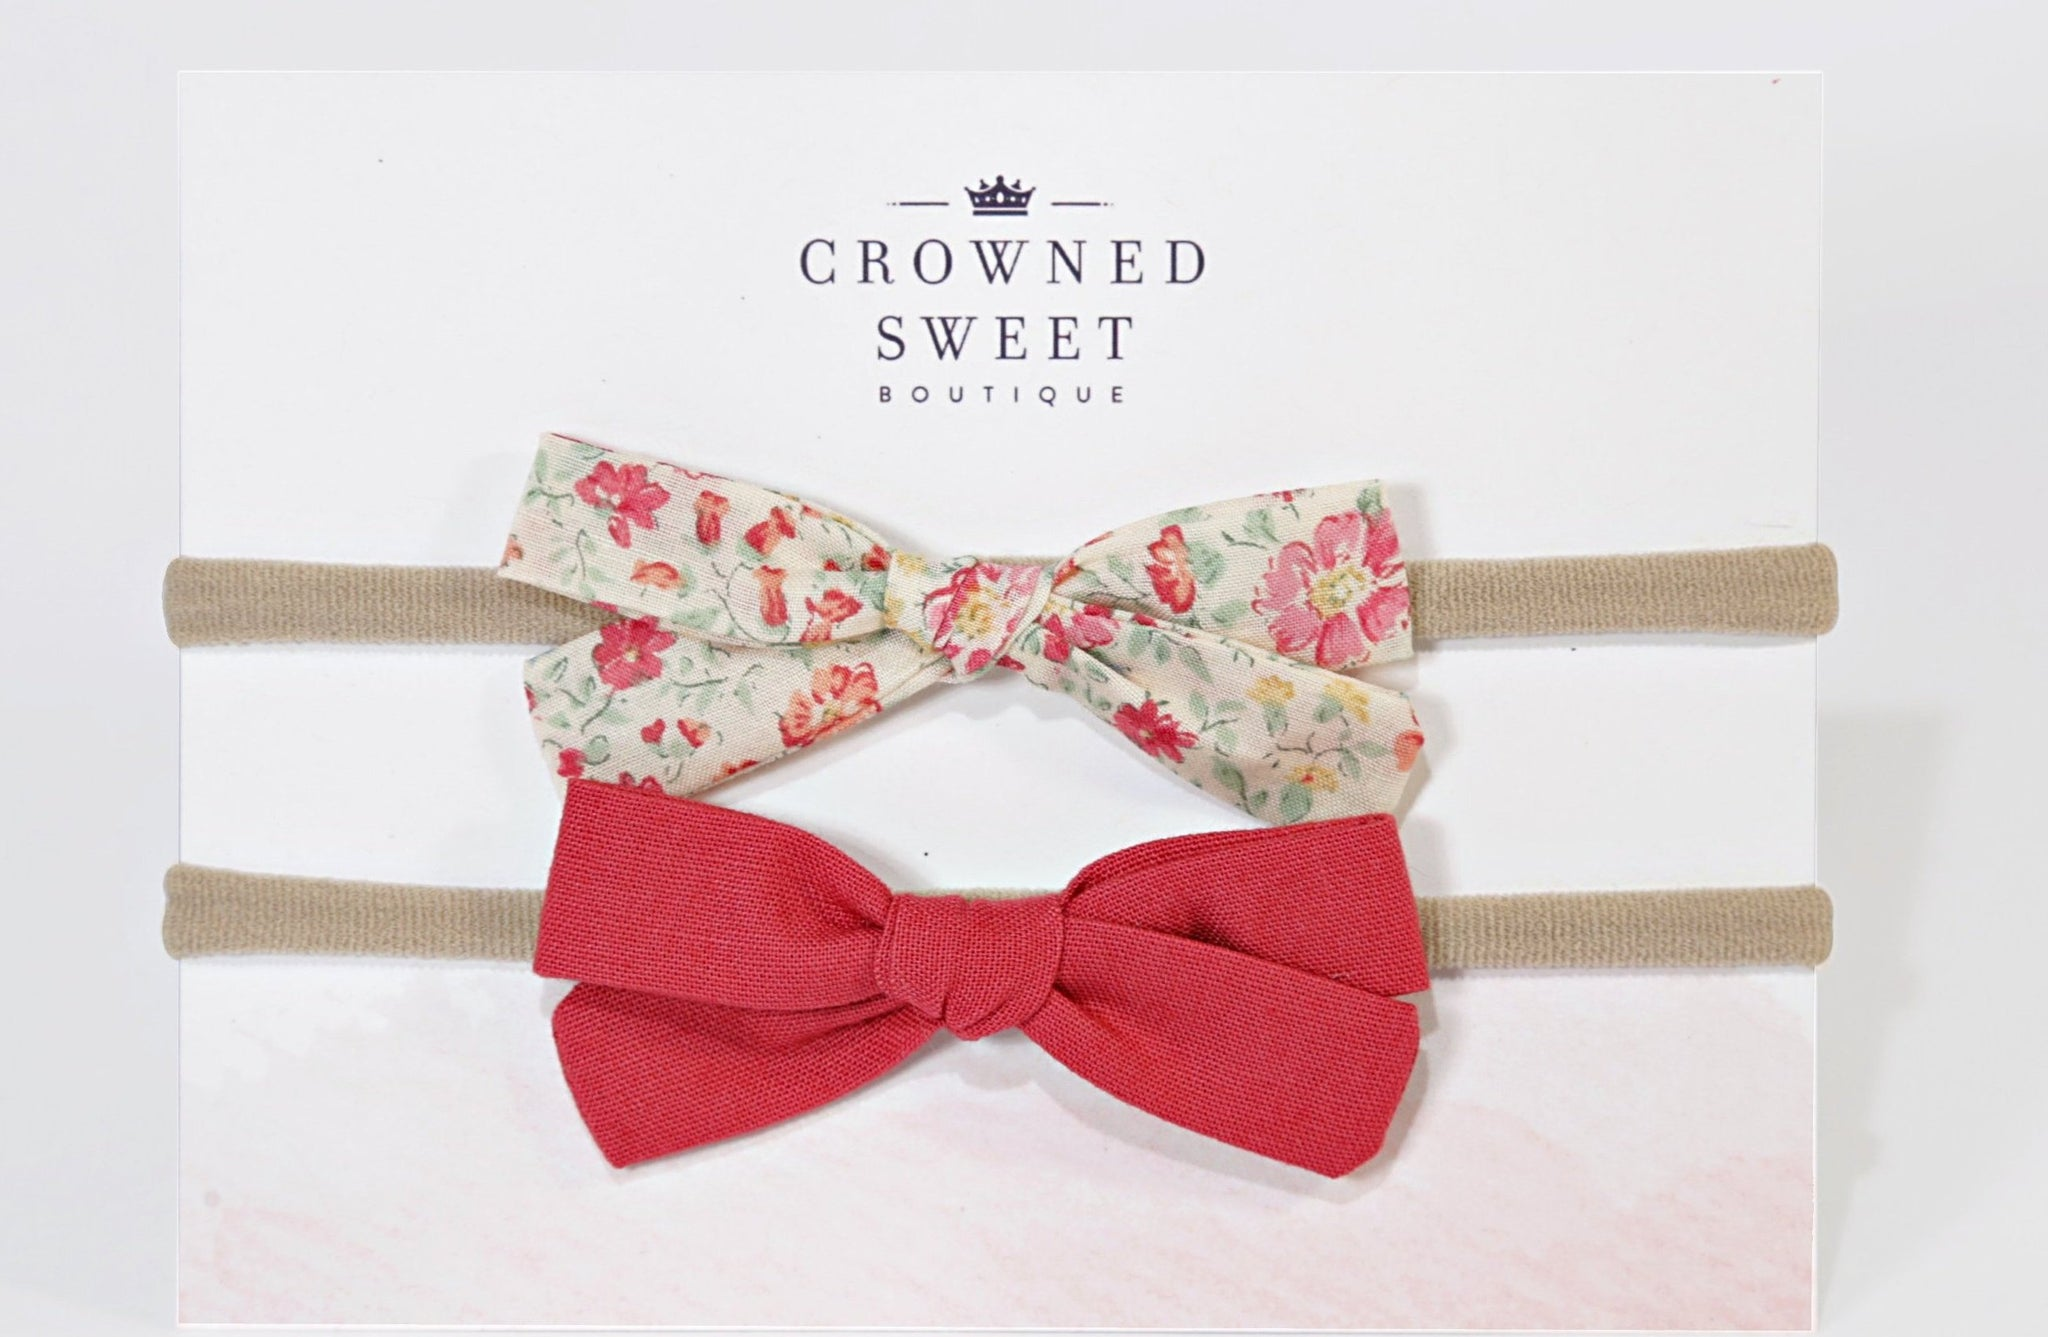 Two baby headbands. The first is with a white bow with pink and green floral pattern and the second is of a pink bow. Both are mounted on its card stock packaging with Crowned Sweet Boutique written top and centre on the cardstock.